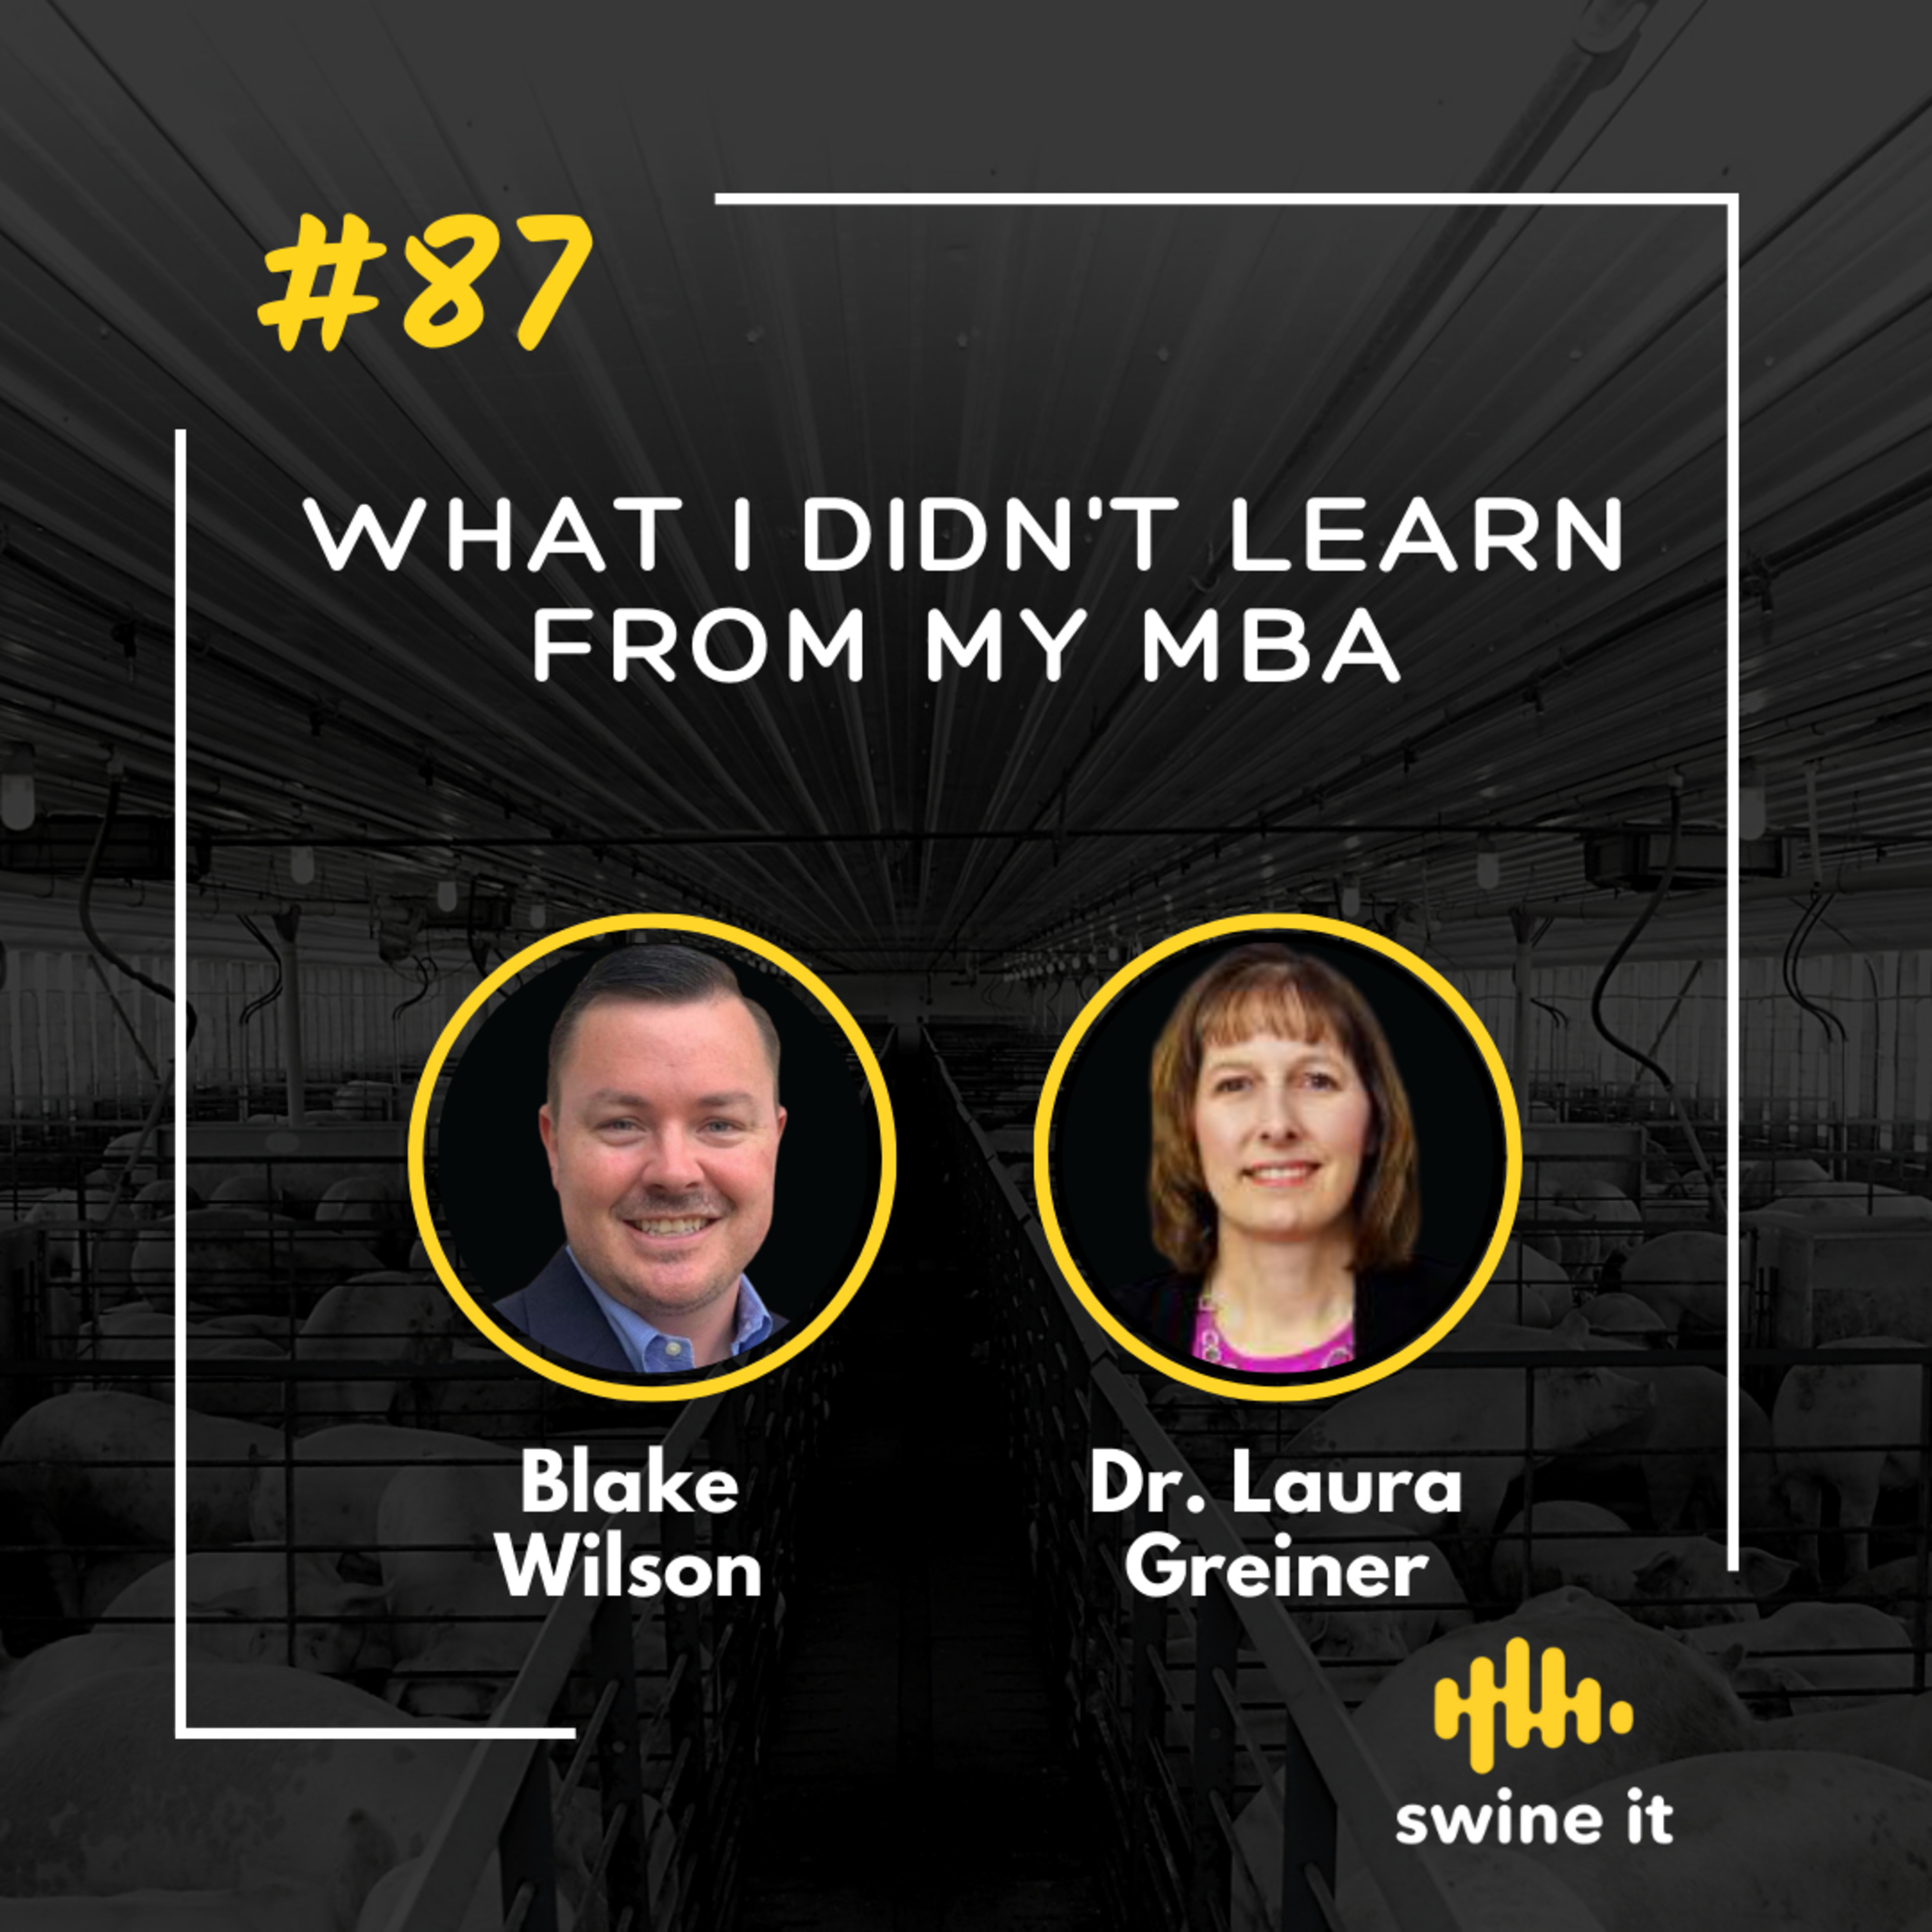 What I didn't learn from my MBA - Blake Wilson